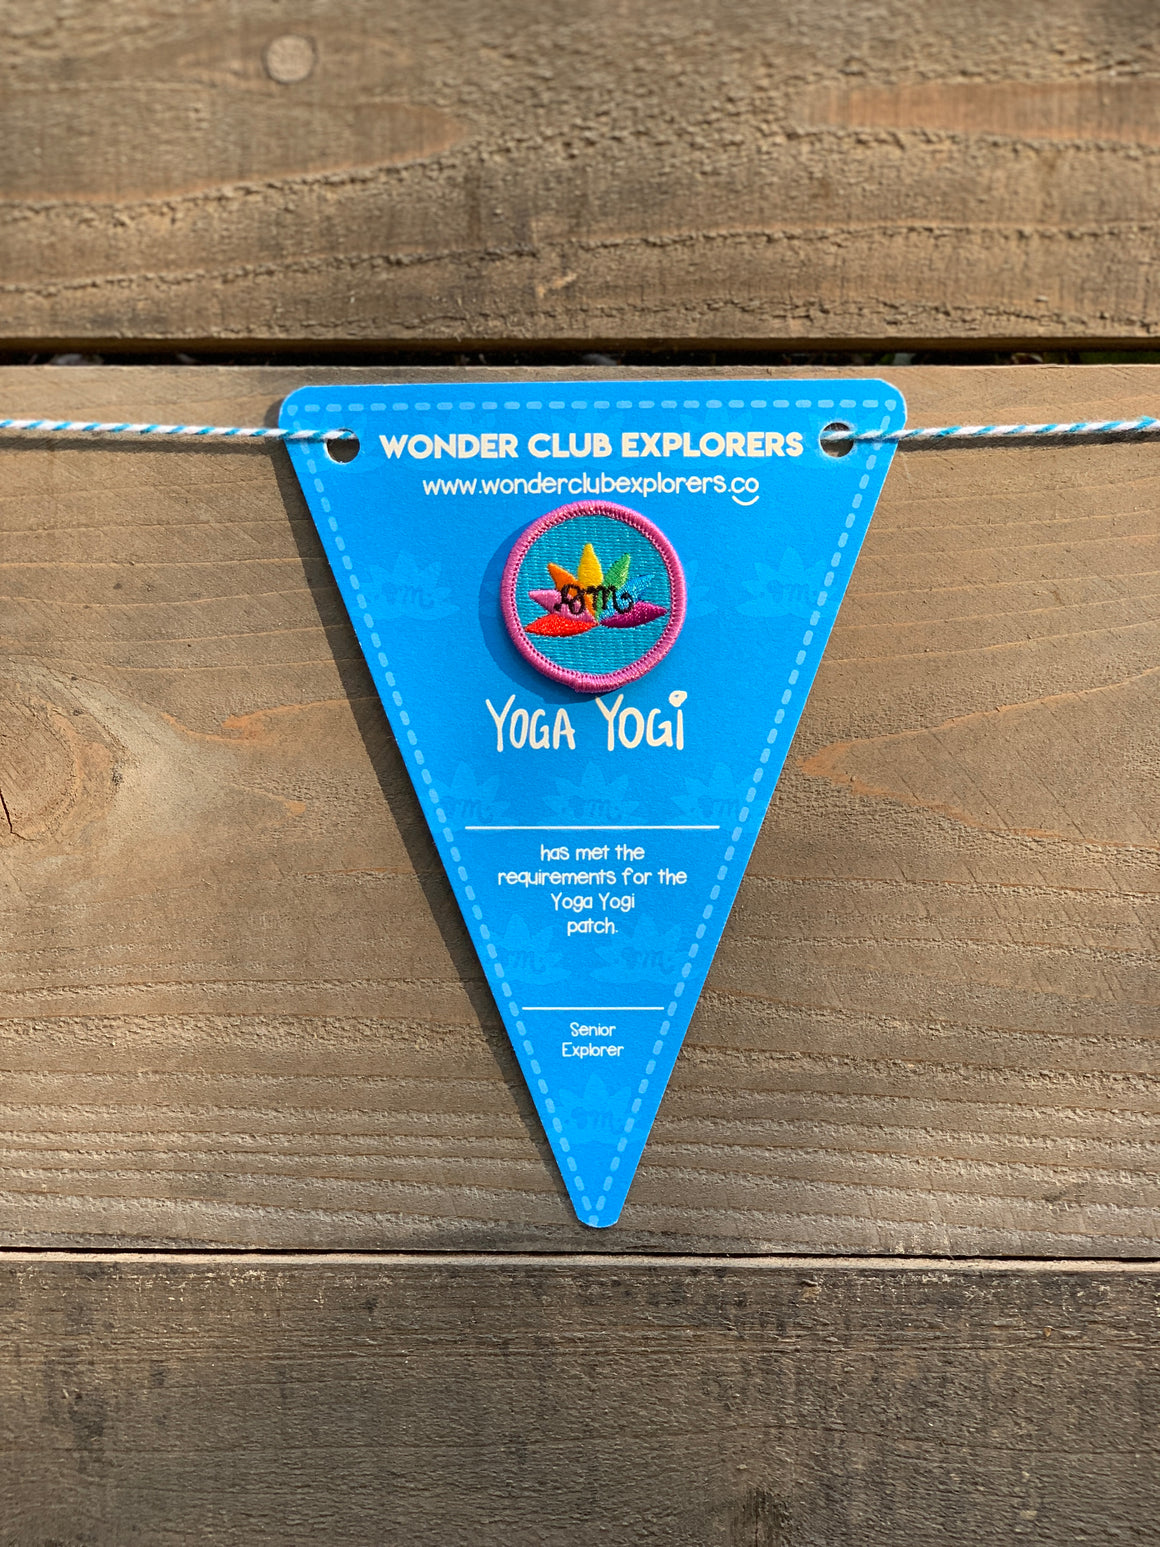 Yoga Yogi Merit Patch & Pennant